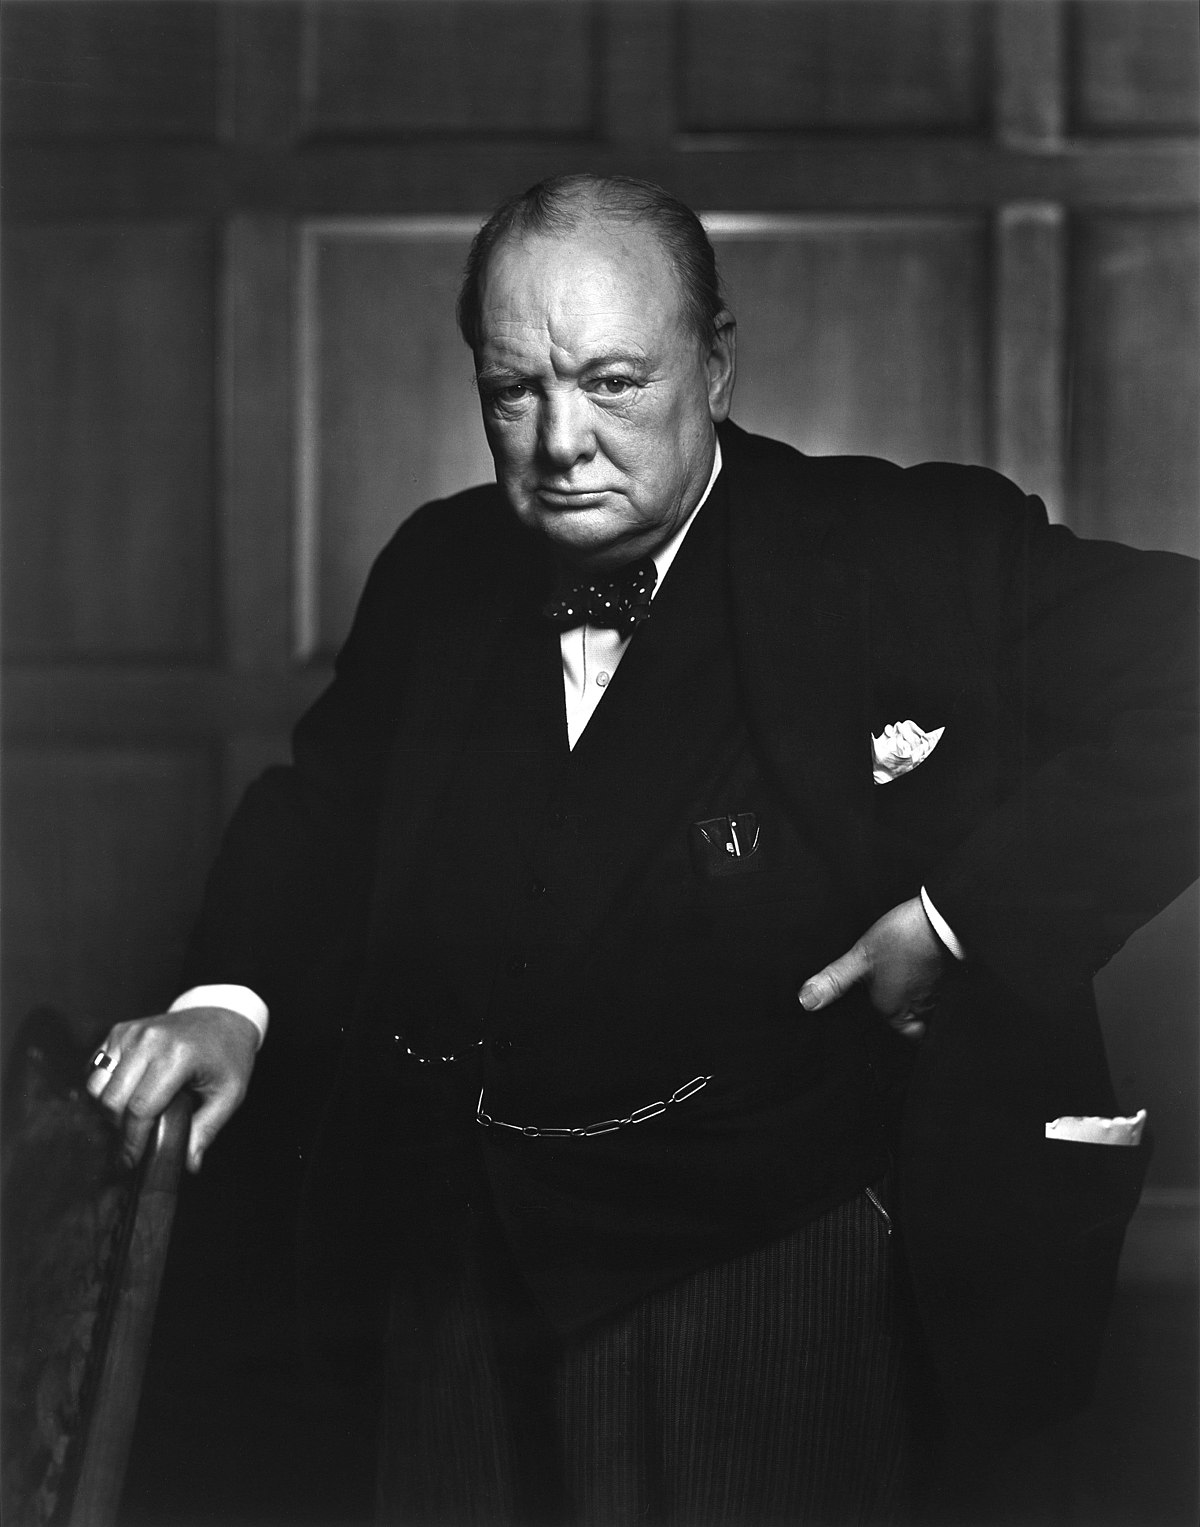 Sir Winston Churchill (1874-1965)